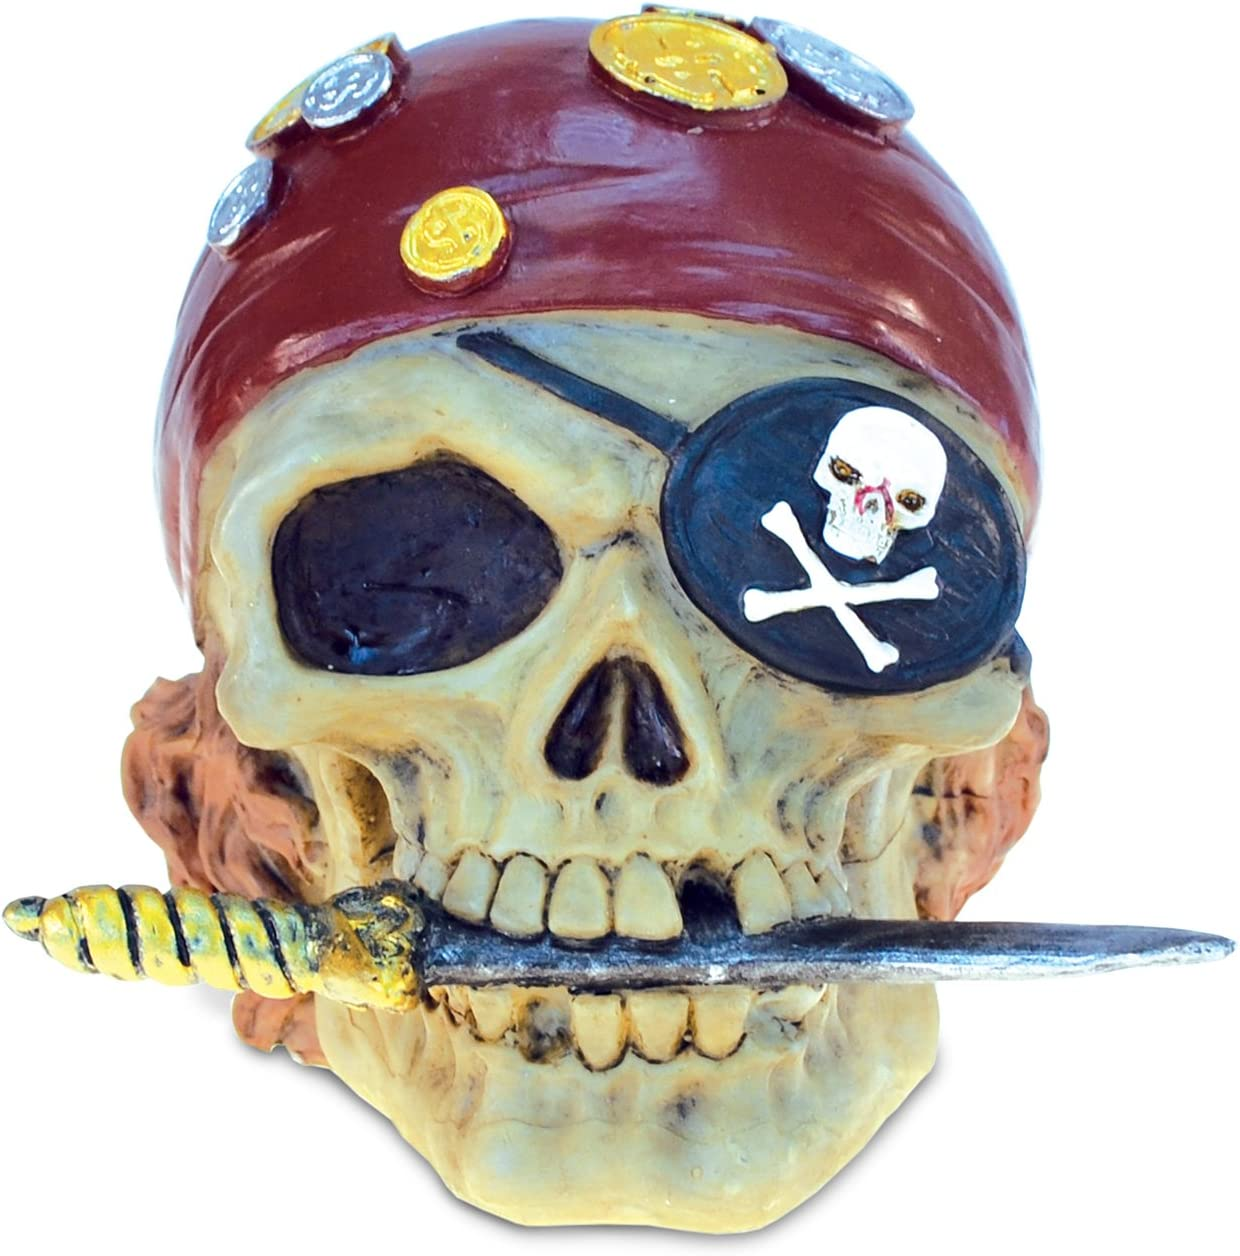 """COTA Global Nautical """"Skull Pirate"""" Figure Intricate Art Resin Sculpture Pirates Theme Décor Handcrafted Hand Painted Tabletop Figurine Money Coin Bank Decoration Home Accent Unique Gift Souvenir"""